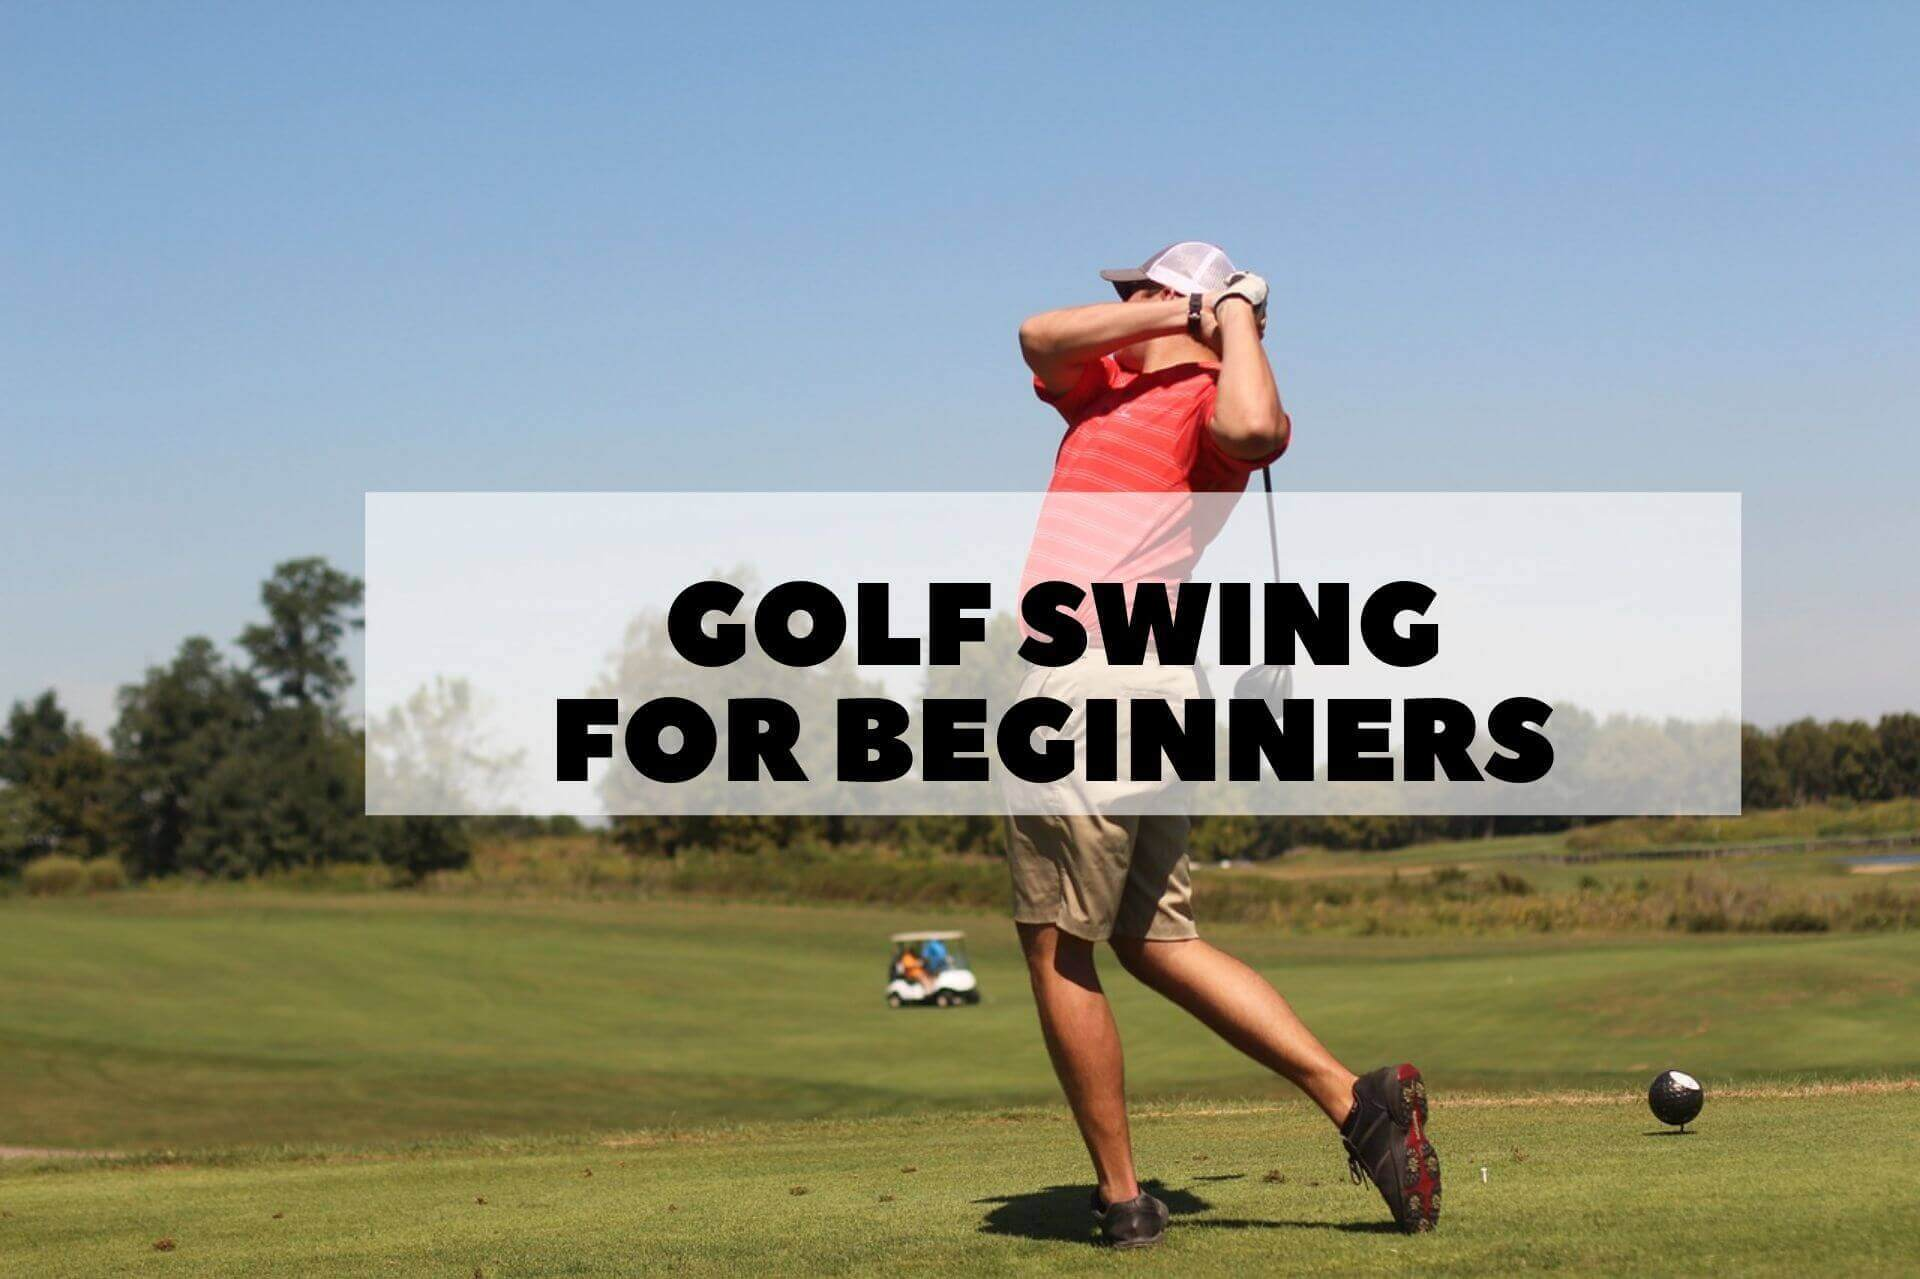 Golf Swing For Beginners